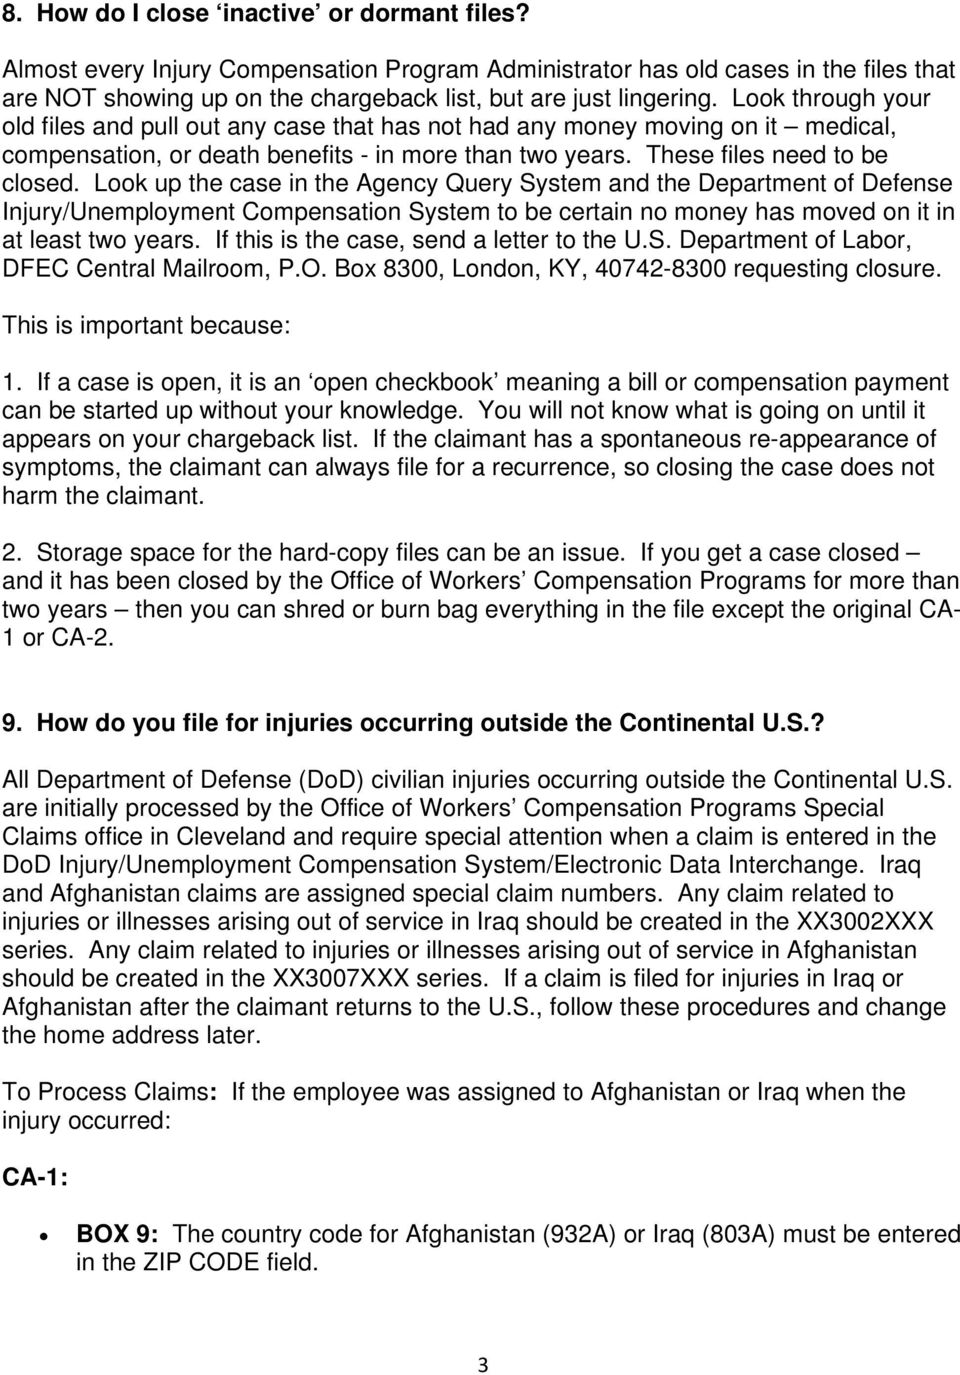 Look up the case in the Agency Query System and the Department of Defense Injury/Unemployment Compensation System to be certain no money has moved on it in at least two years.